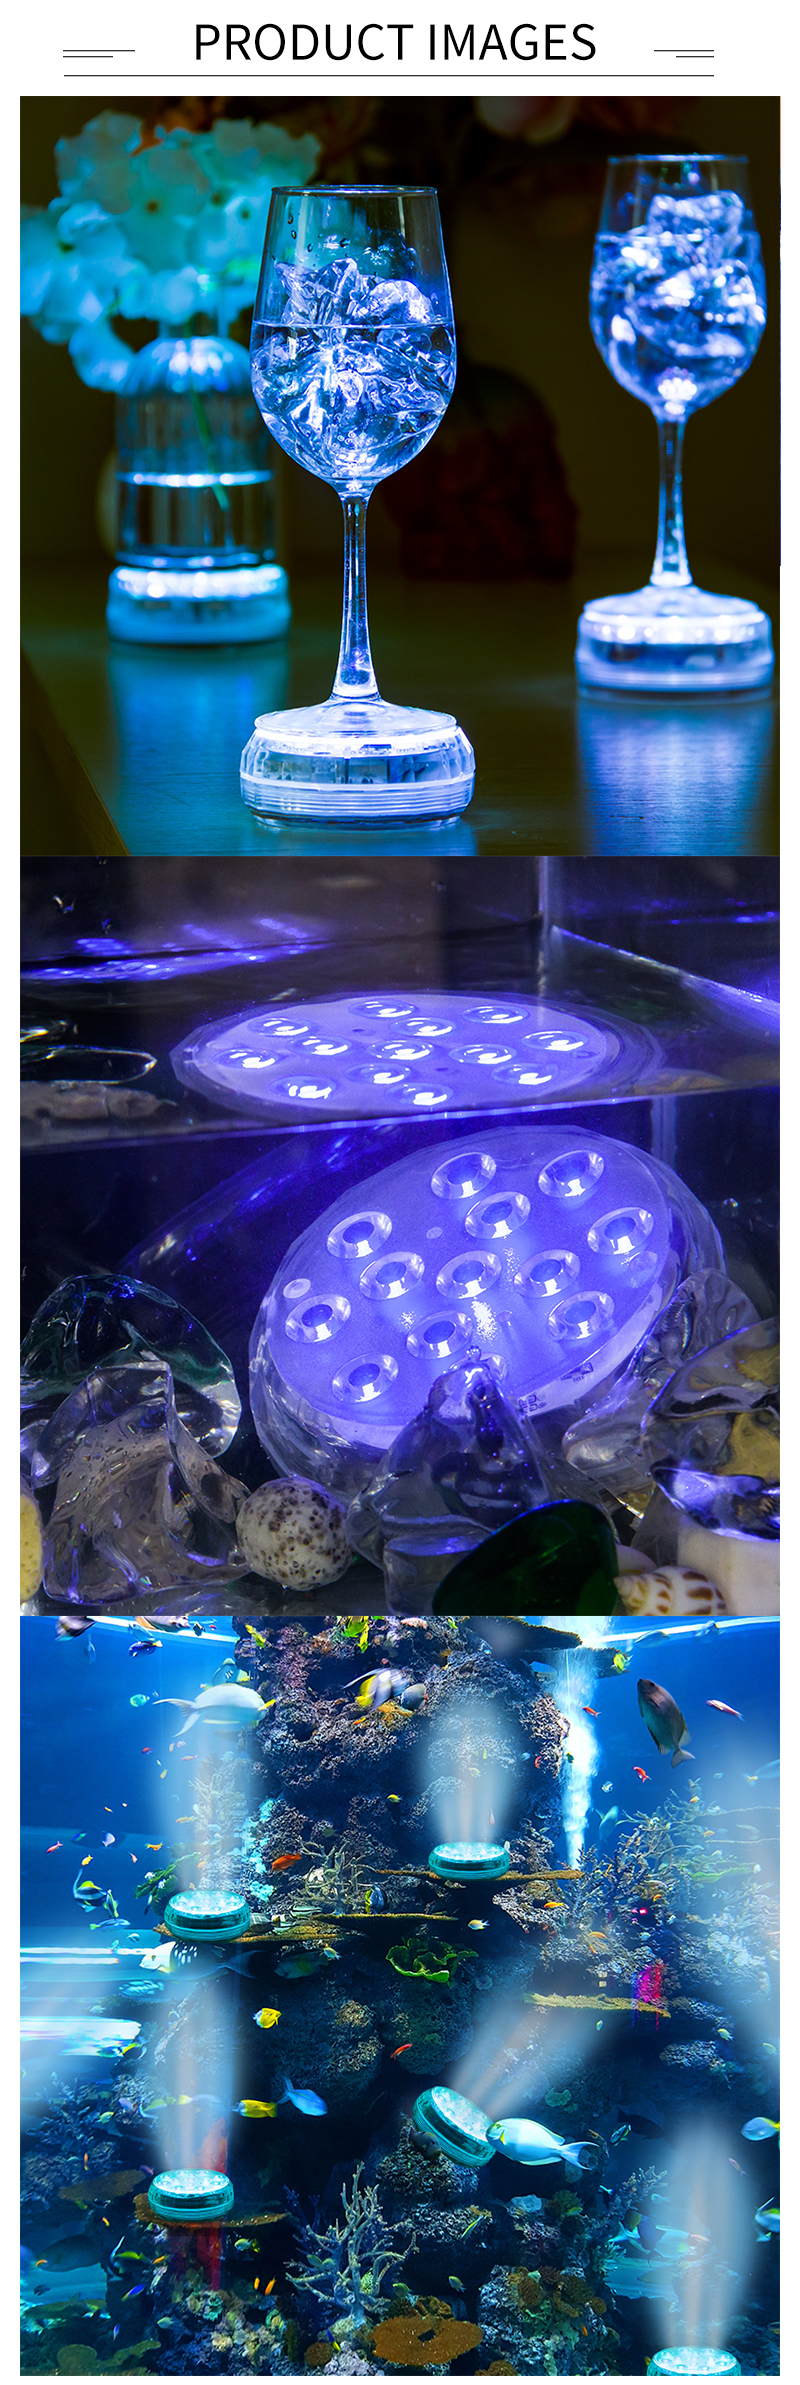 LED Waterproof Submersible Lights RGB 21Keys IR Remote Control with Magnet and Suction Cups Underwater Lights